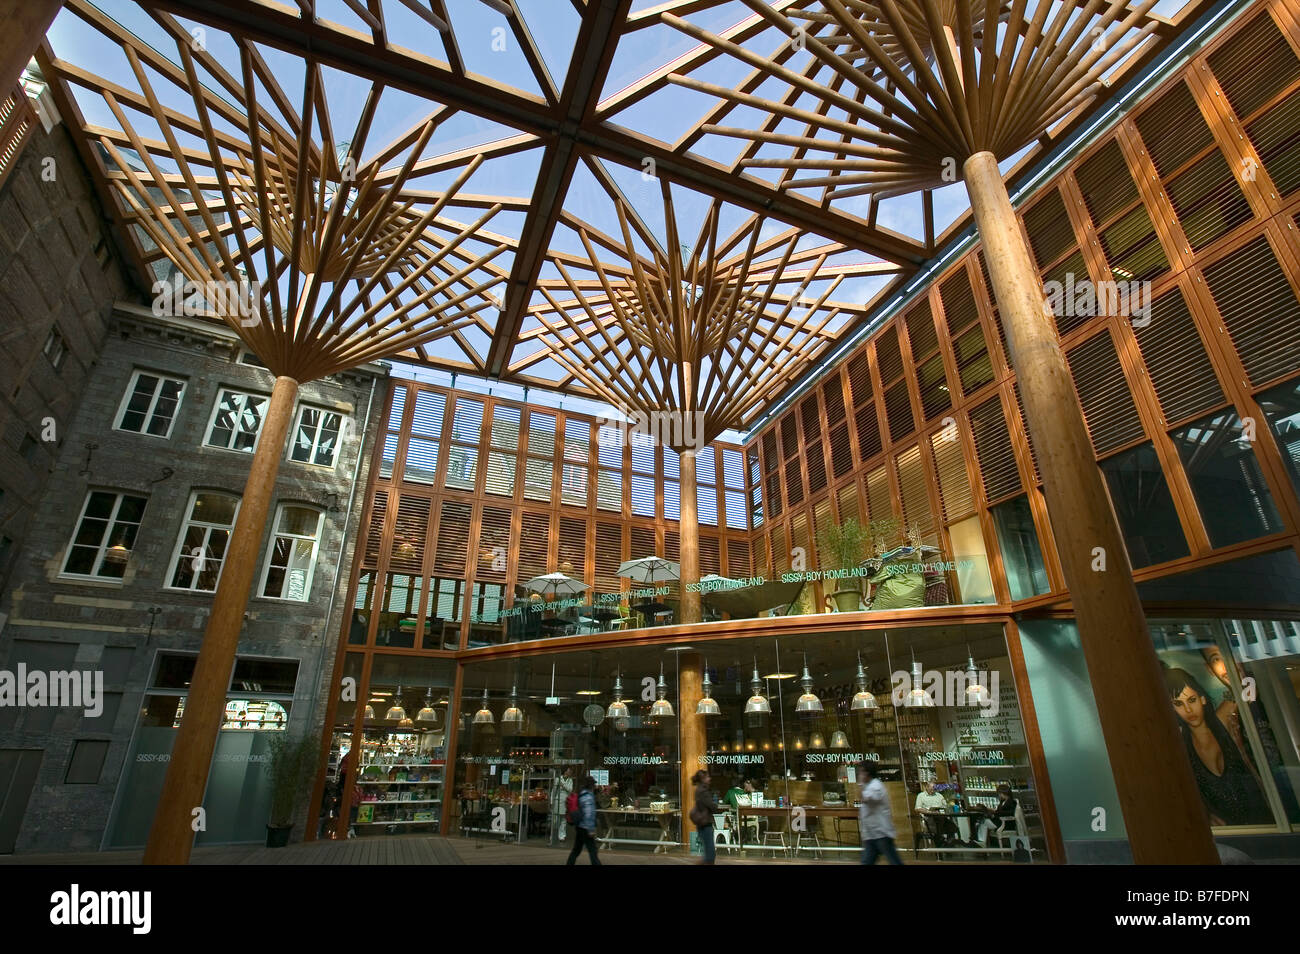 Shopping Center In Maastricht Netherlands Europe Stock Photo